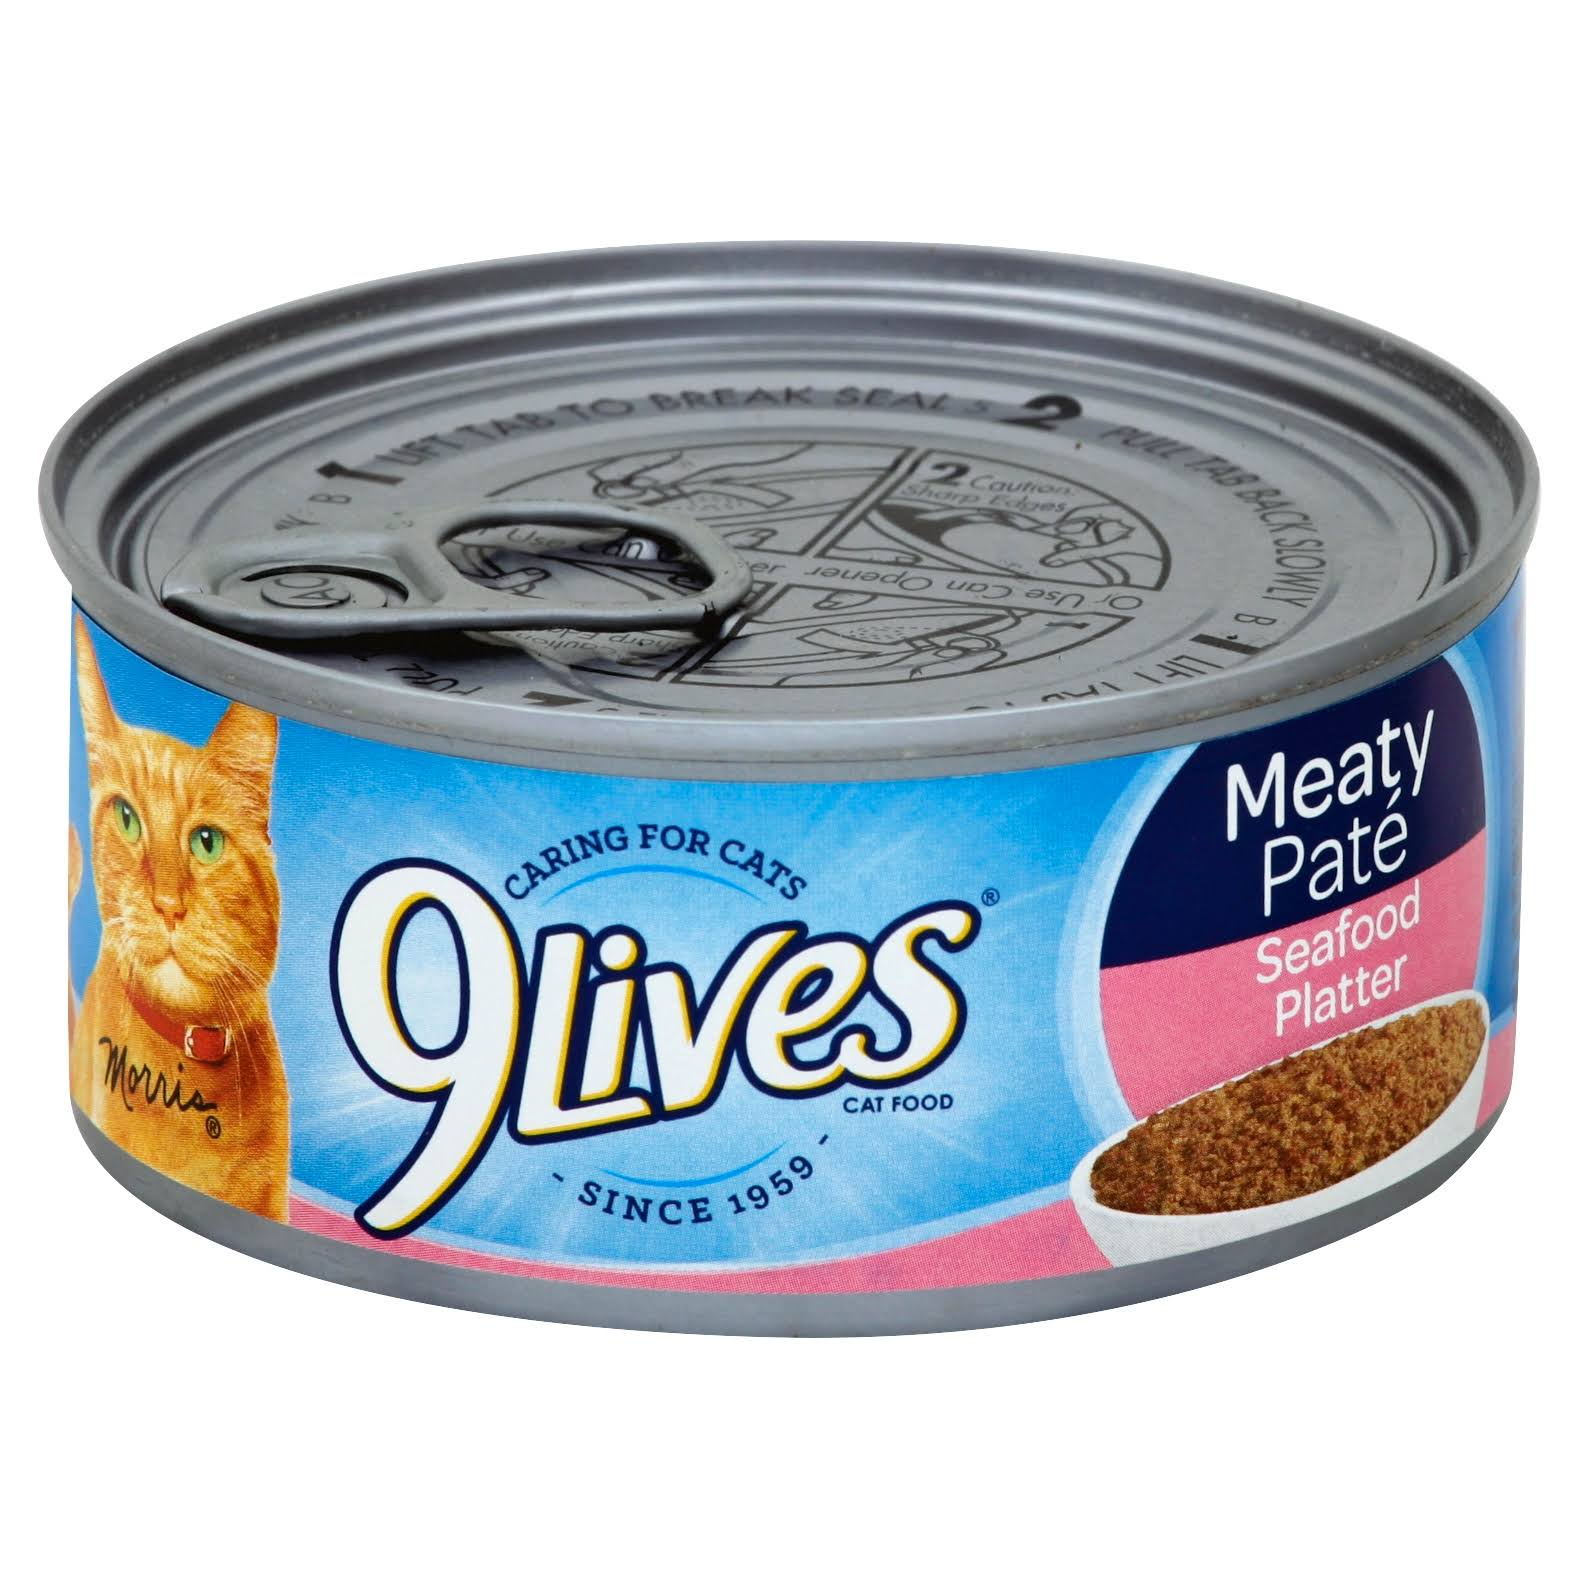 9Lives Cat Food - Seafood Platter, 5.5oz